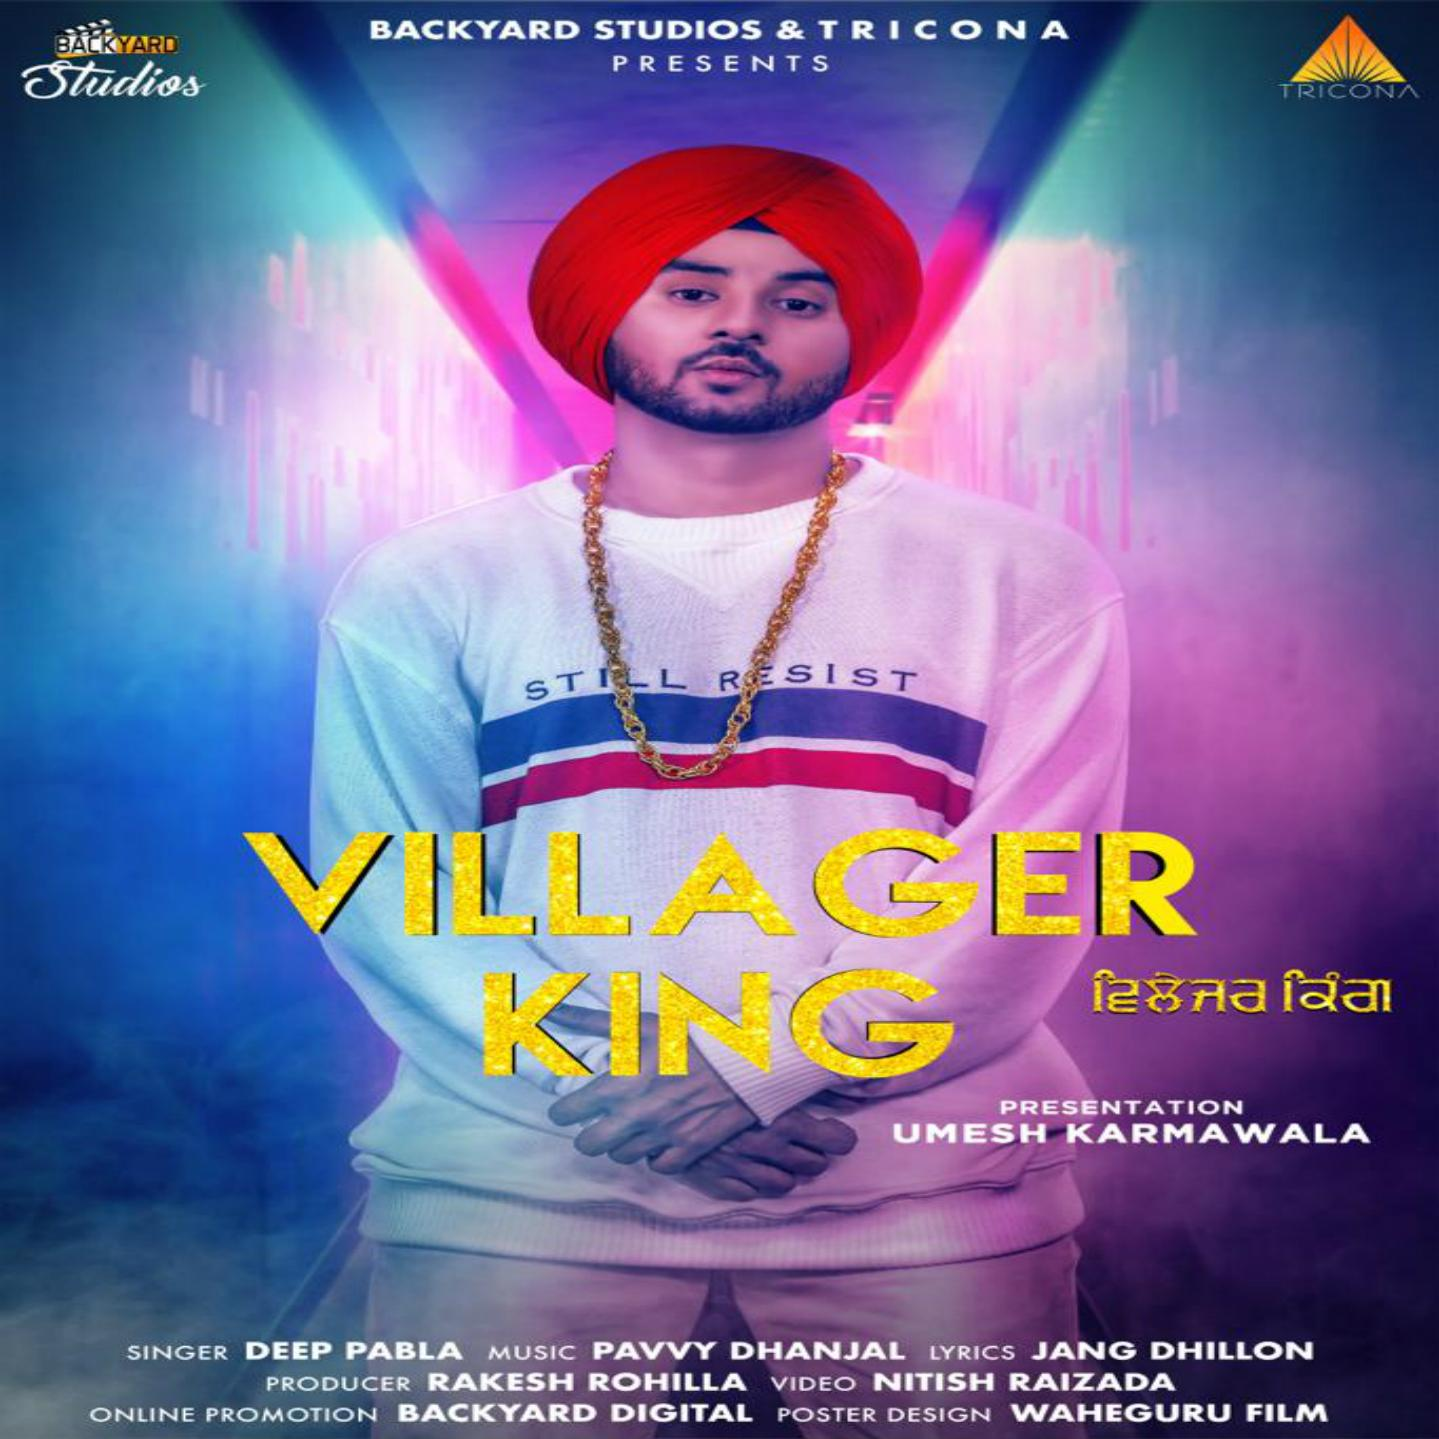 Villager King by Deep Pabla